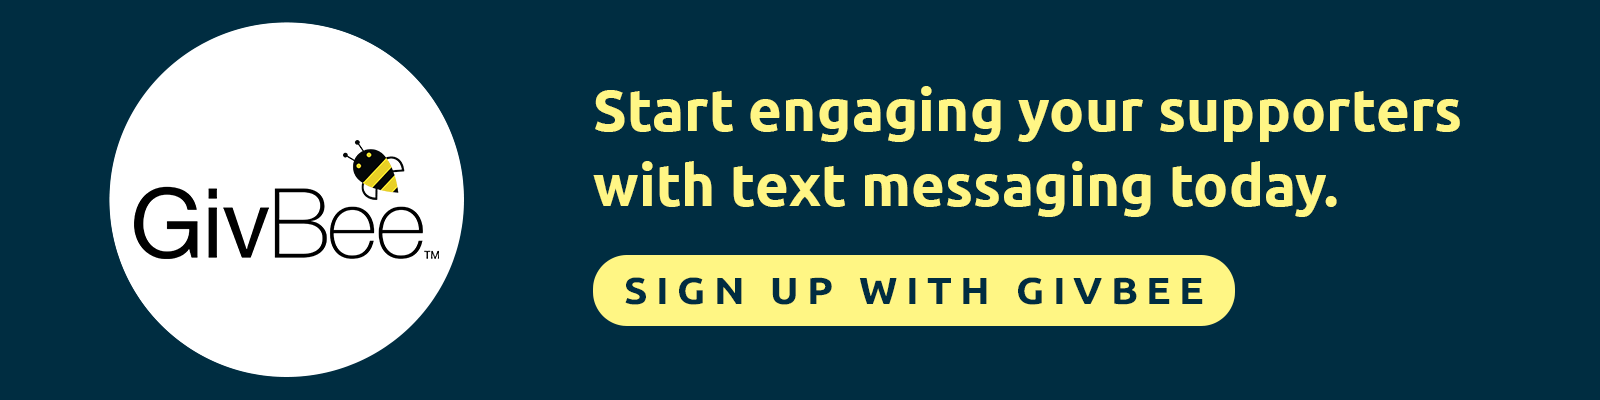 Start engaging your supporters with text messaging. Sign up with GivBee today!